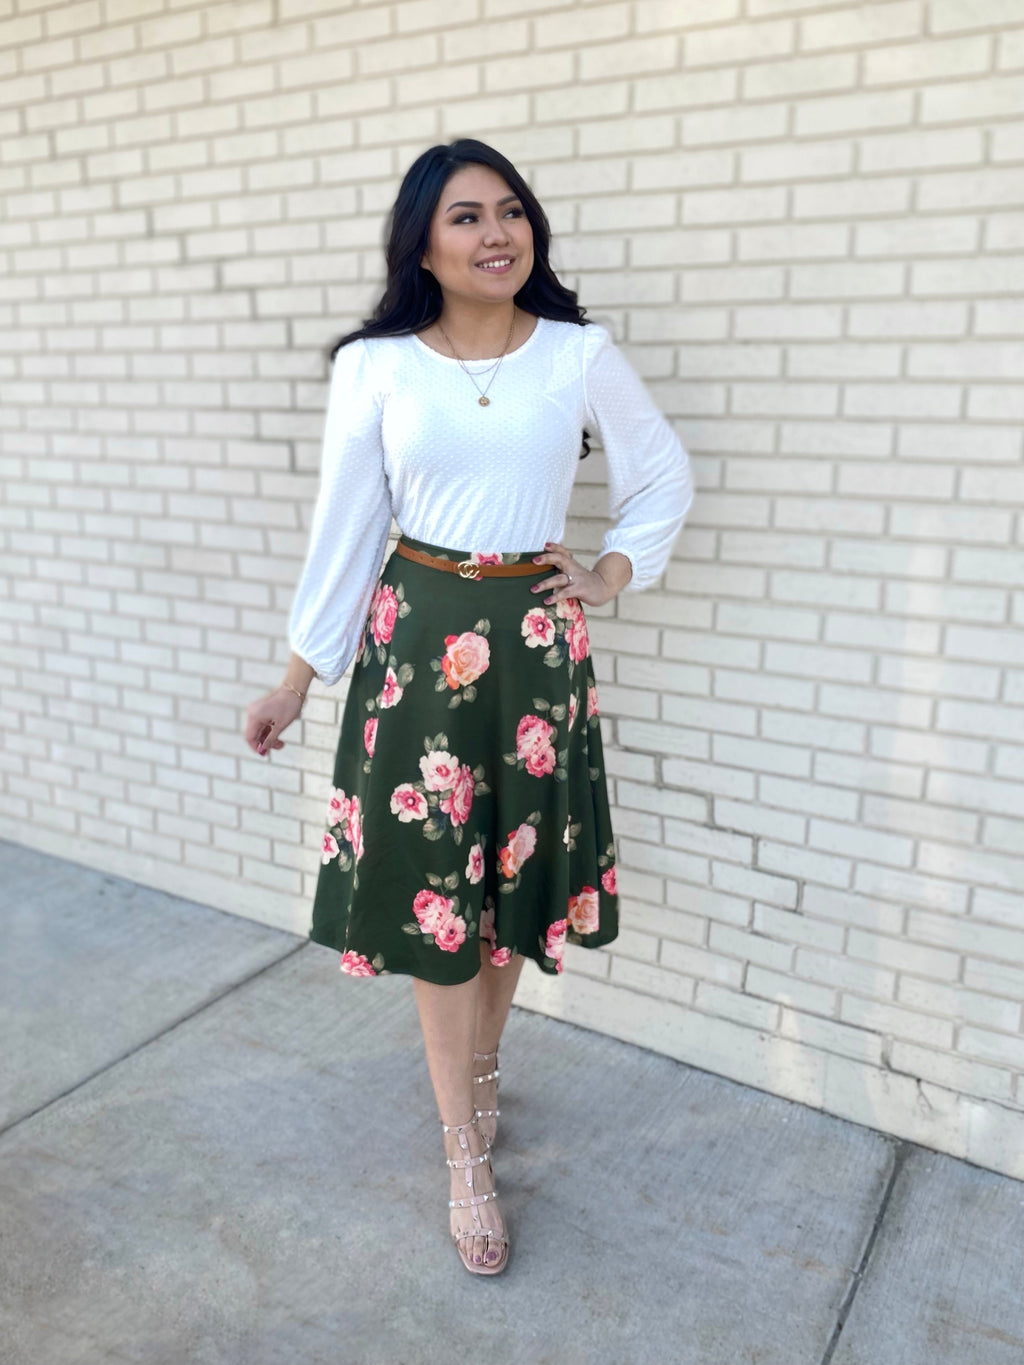 The Georgia Floral Skirt (Exclusive)